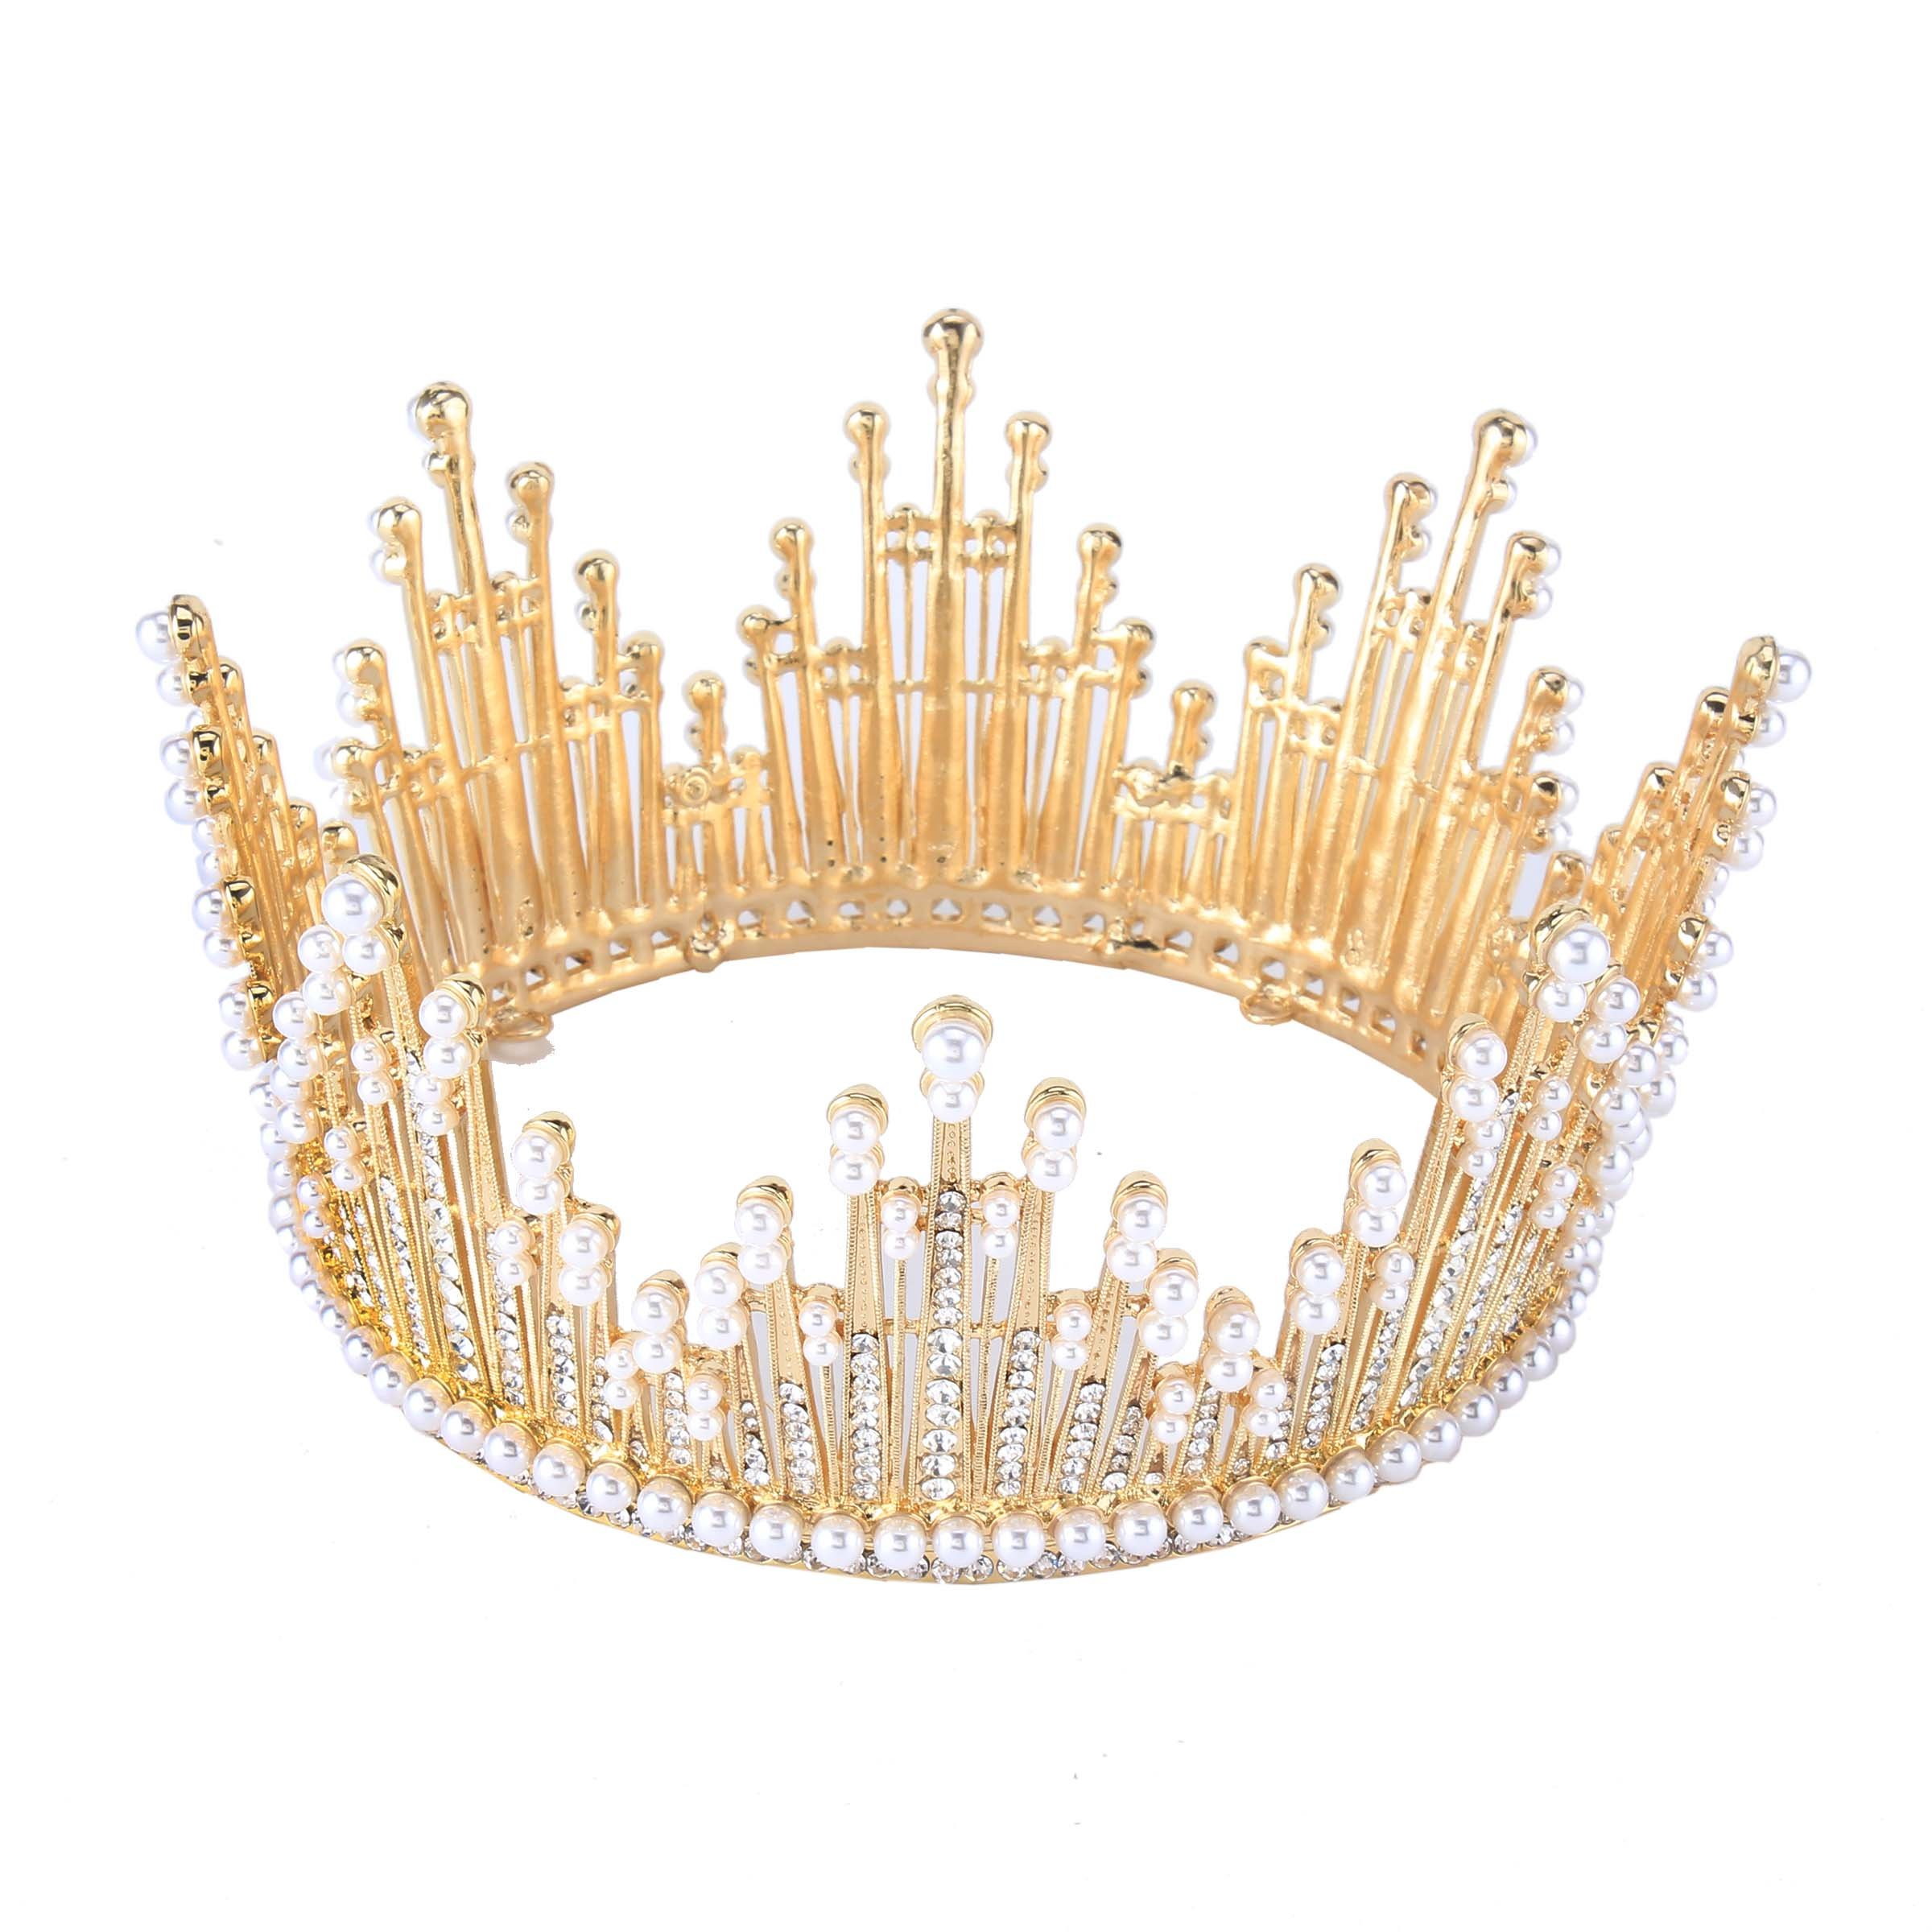 Stuffwholesale Women Wedding Tiara Pearl Bead Gold Plated Rhinestone Crown Hair Jewelry with Bobby Pins (Gold)